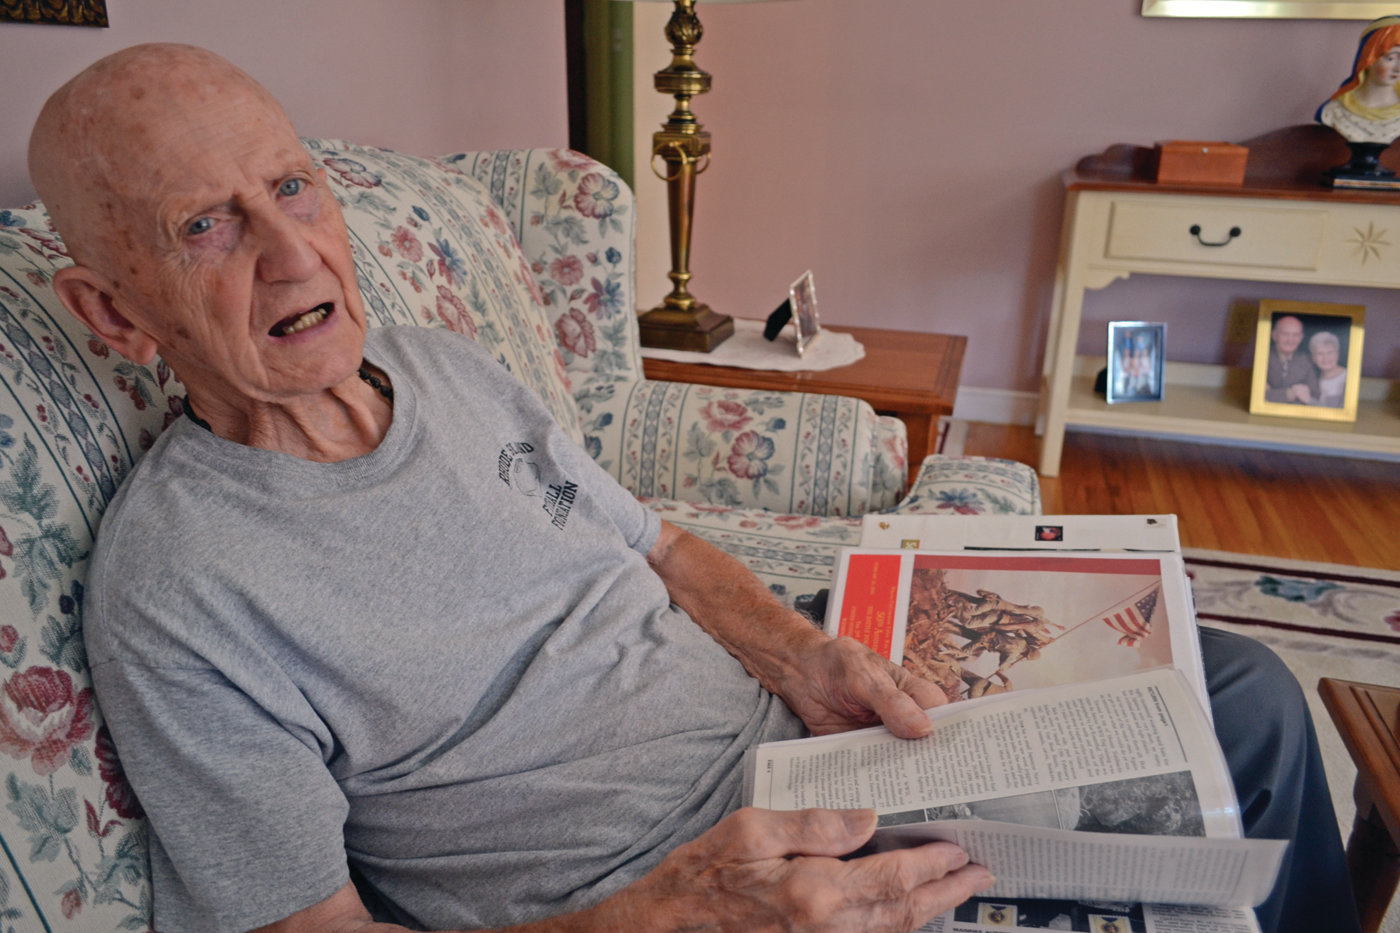 ARCHIVIST: Ray Raiche has accumulated enough historical information and photographs to fill 22 albums. He leafs through one here while sitting on his couch in his Warwick home.